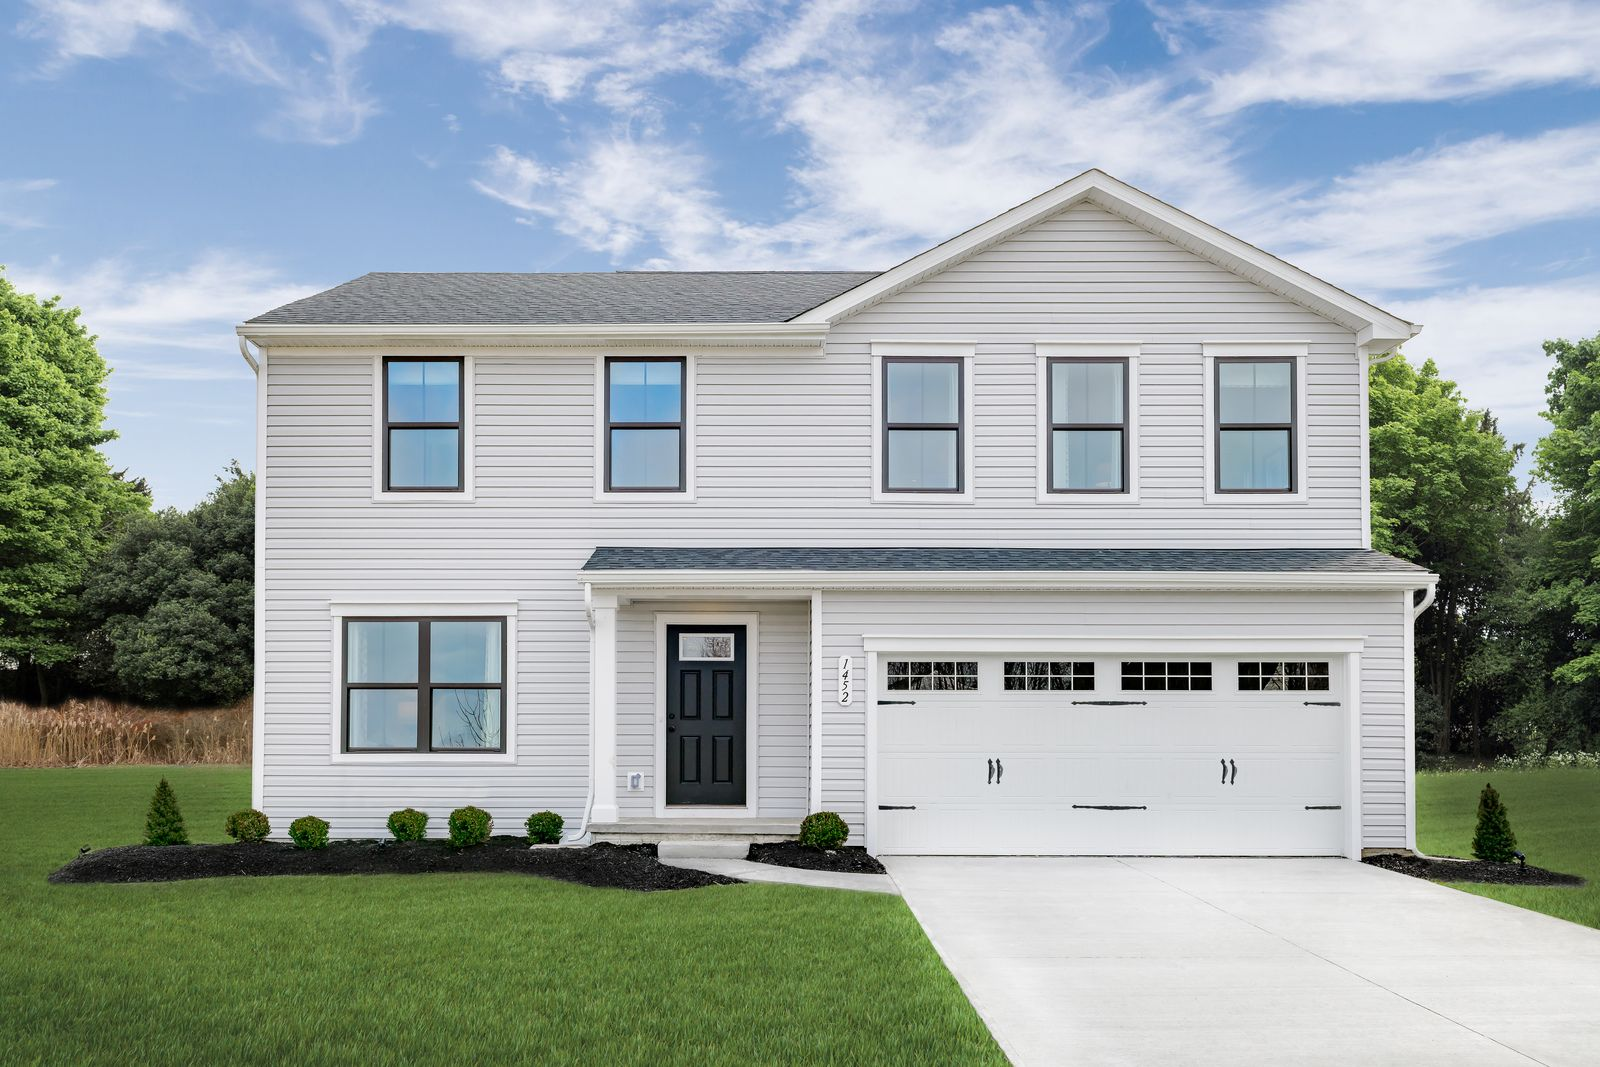 NEW HOMES COMING SOON TO AMELIA SUMMER 2021:New 2-story and ranch homes for a great value off Rt. 125 and close to I-275. Located in West Clermont Schools, wooded views, appliances included. From the mid $200s.Click here to join the VIP List!